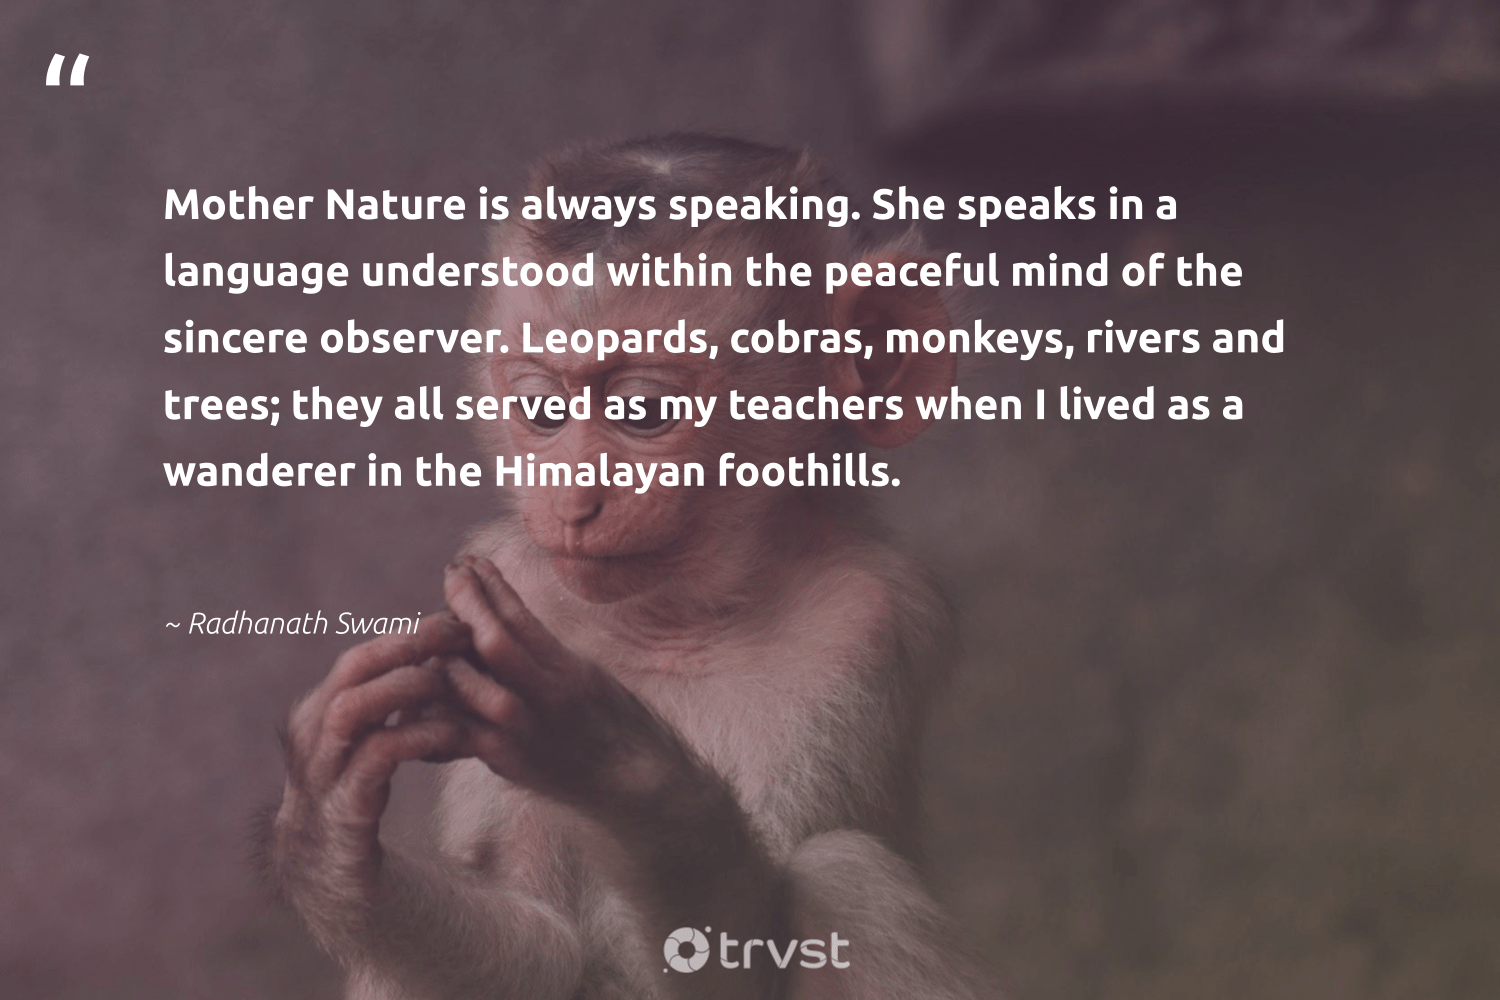 """Mother Nature is always speaking. She speaks in a language understood within the peaceful mind of the sincere observer. Leopards, cobras, monkeys, rivers and trees; they all served as my teachers when I lived as a wanderer in the Himalayan foothills.""  - Radhanath Swami #trvst #quotes #nature #rivers #mothernature #leopards #monkeys #environment #earth #perfectnature #noplanetb #changetheworld"